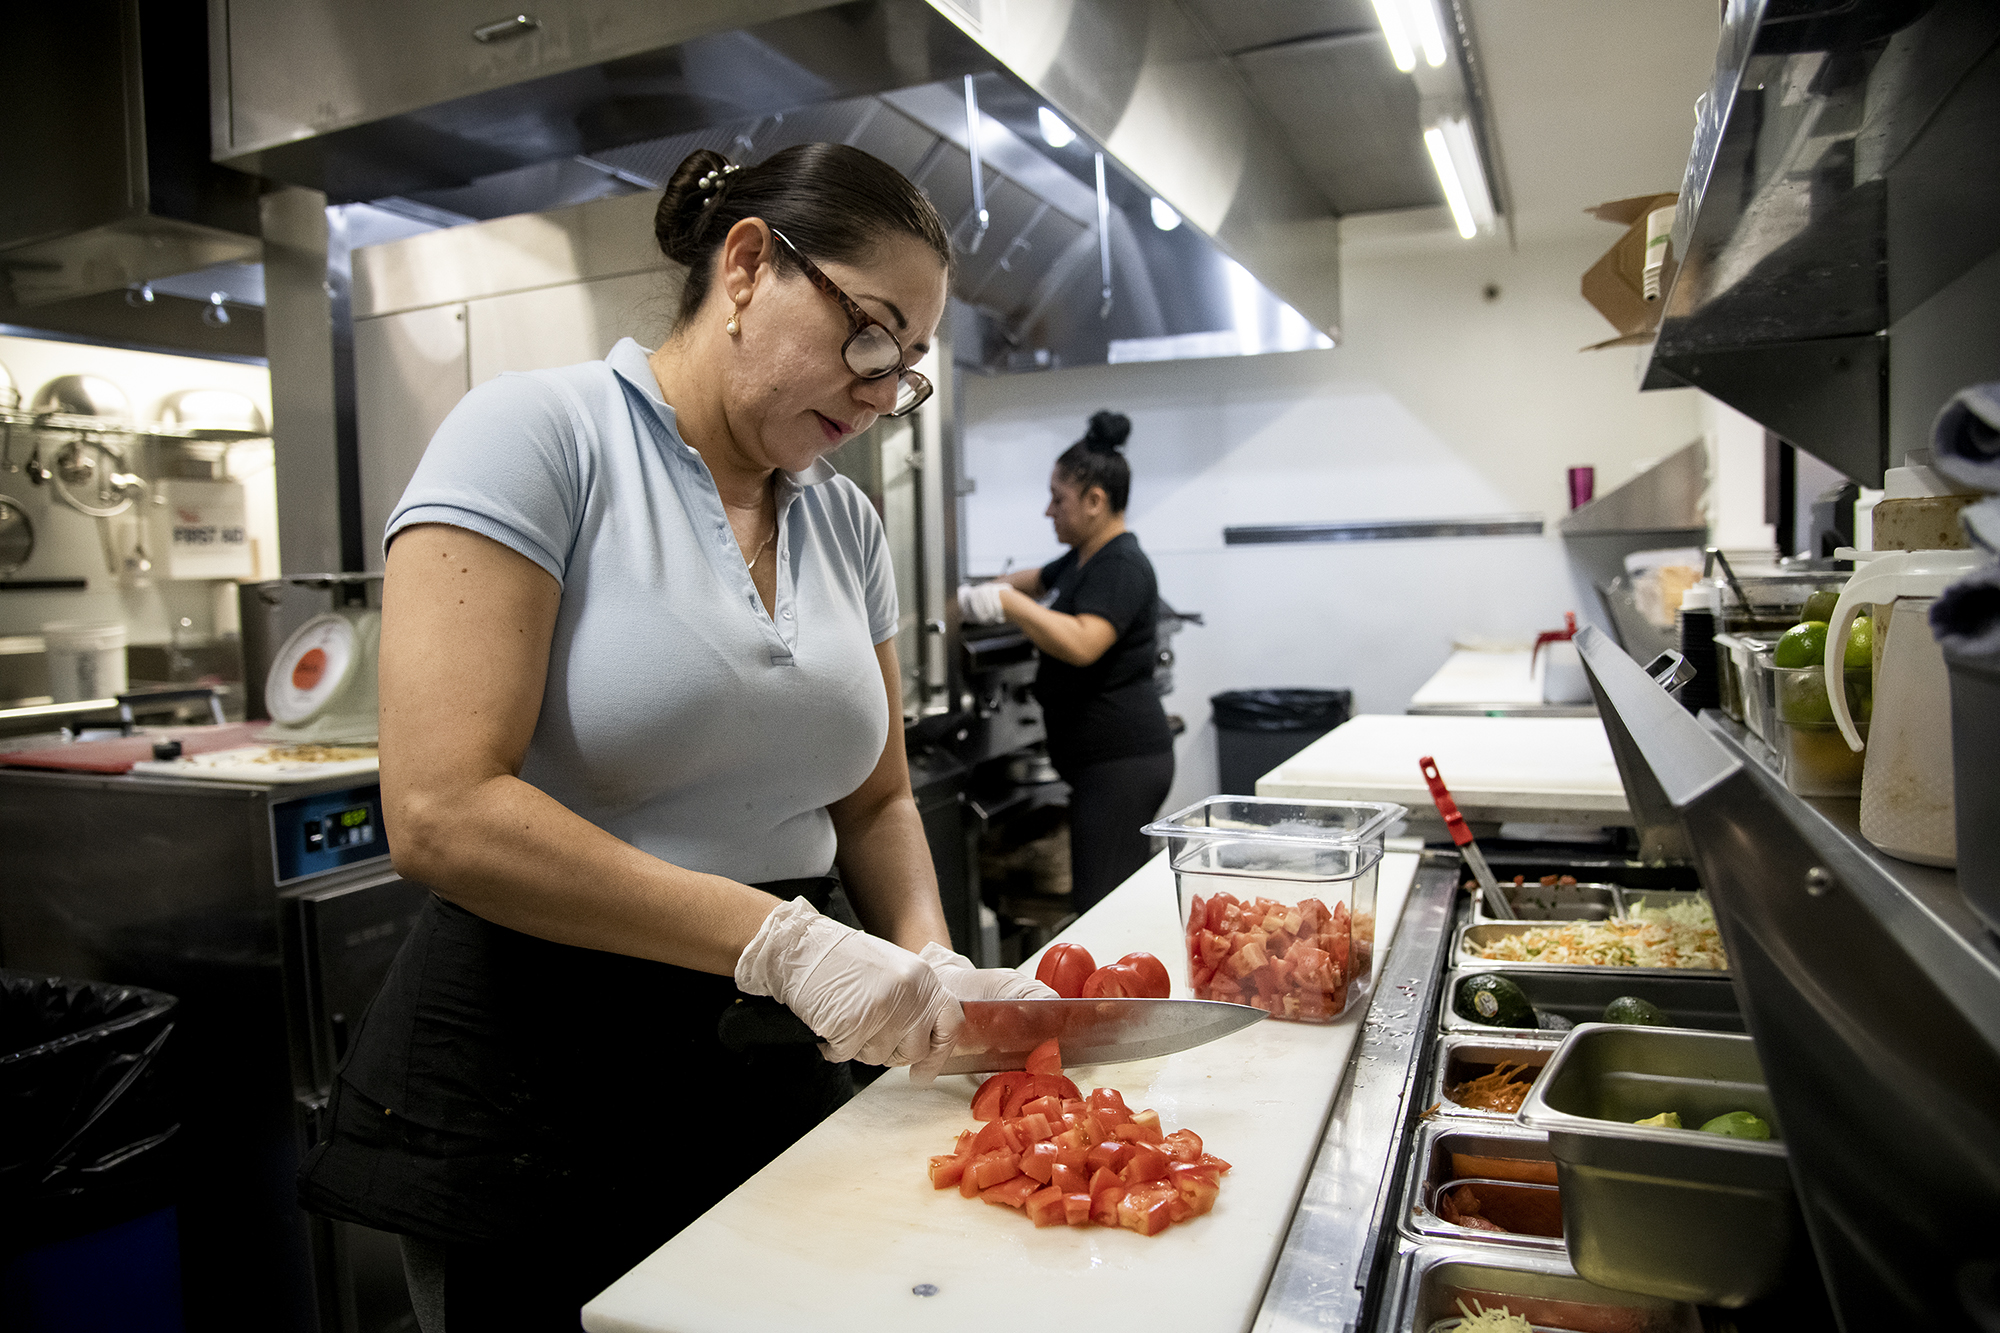 A woman with her hair back and wearing gloves chops tomatoes in a restaurant kitchen.